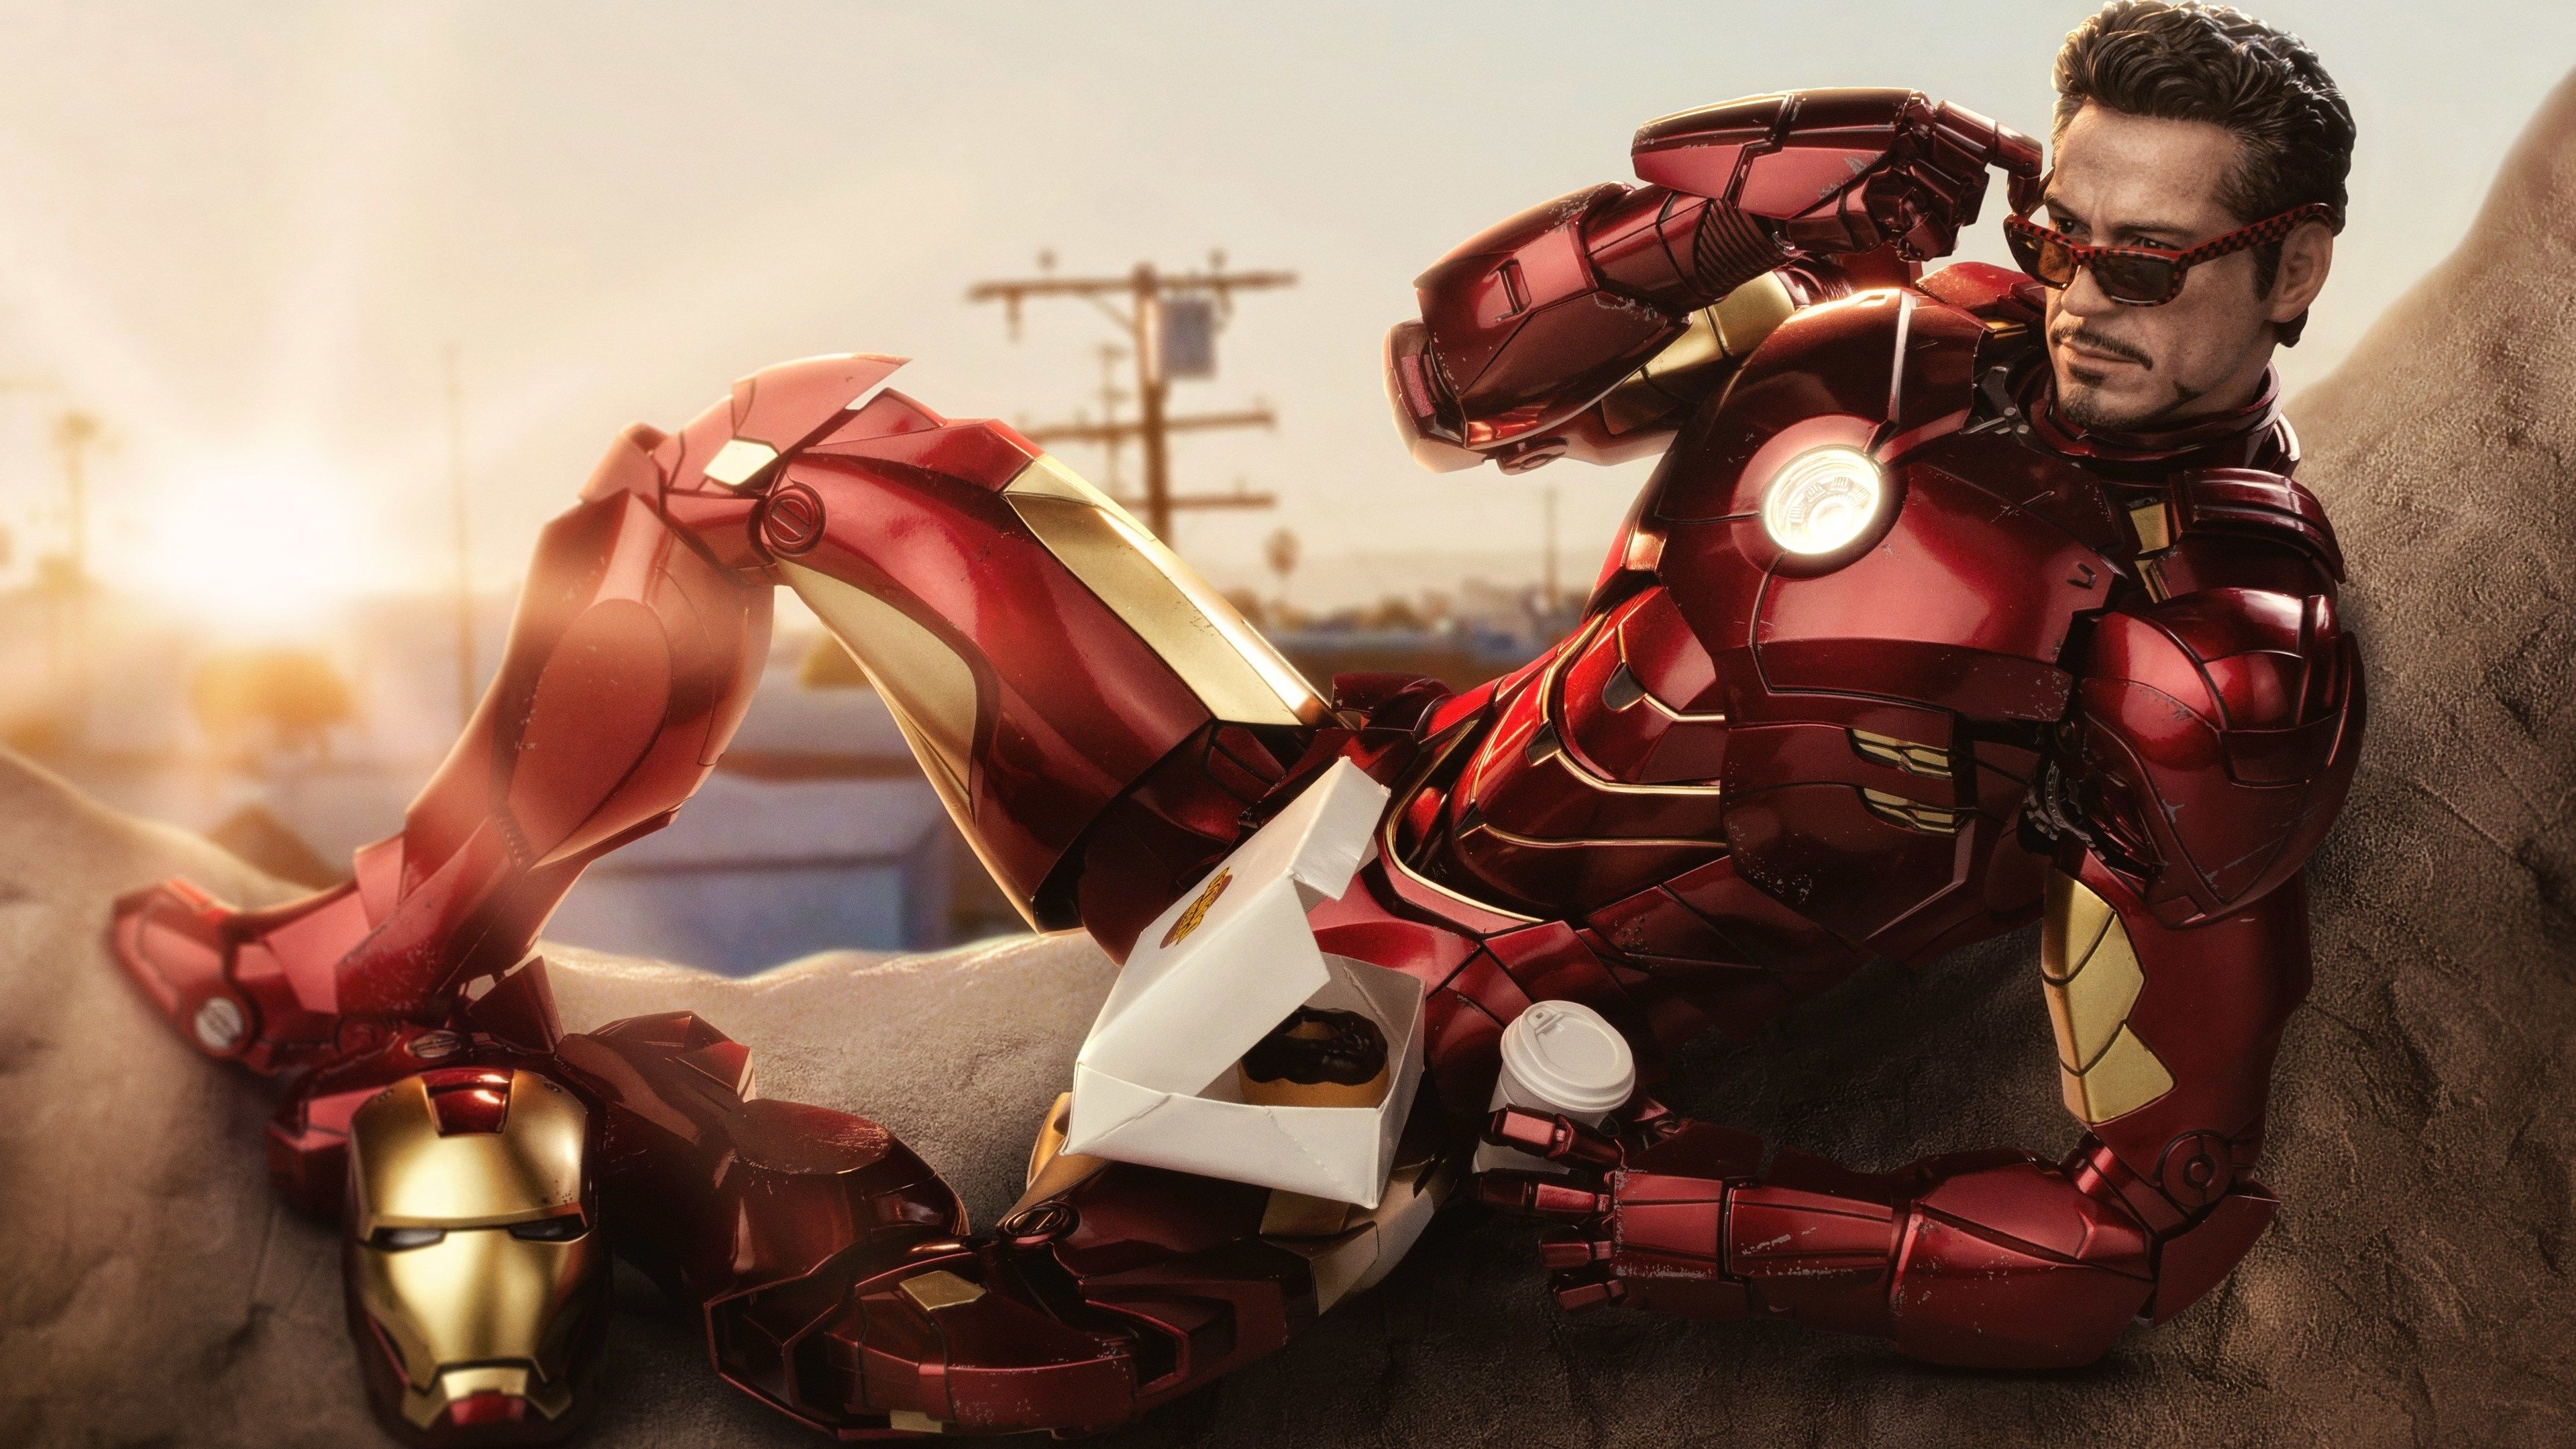 Iron Man Eating Dunkin Donuts With Coffee Superheroes Wallpapers Iron Man Wallpapers Hd Wallpapers 5k W Iron Man Wallpaper Superhero Wallpaper Man Wallpaper